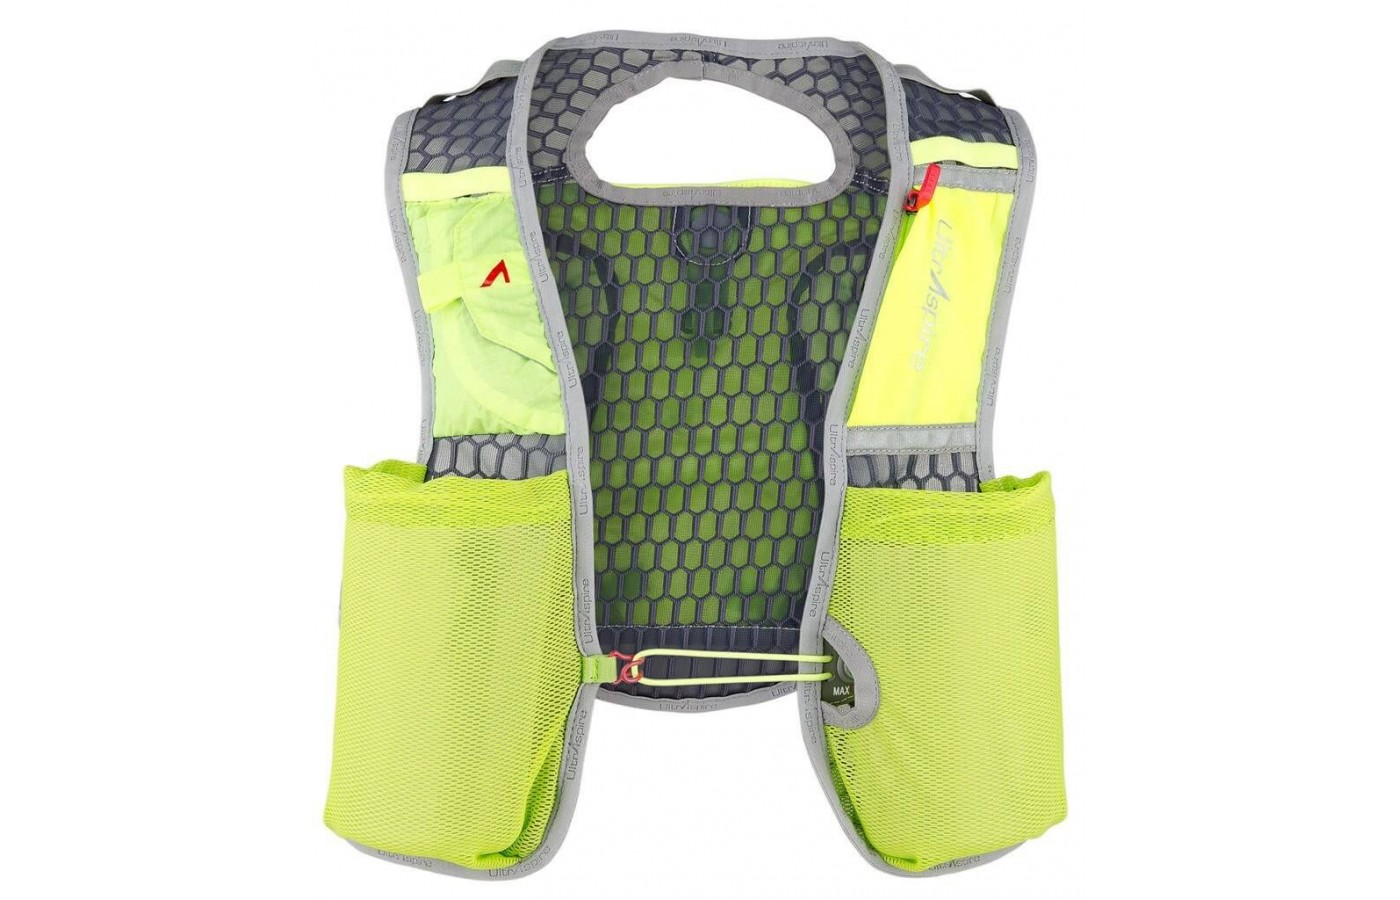 The UltrAspire Spry 2.0 Vest is a lightweight vest ideal for ultra runners, marathoners, and obstacle race participants